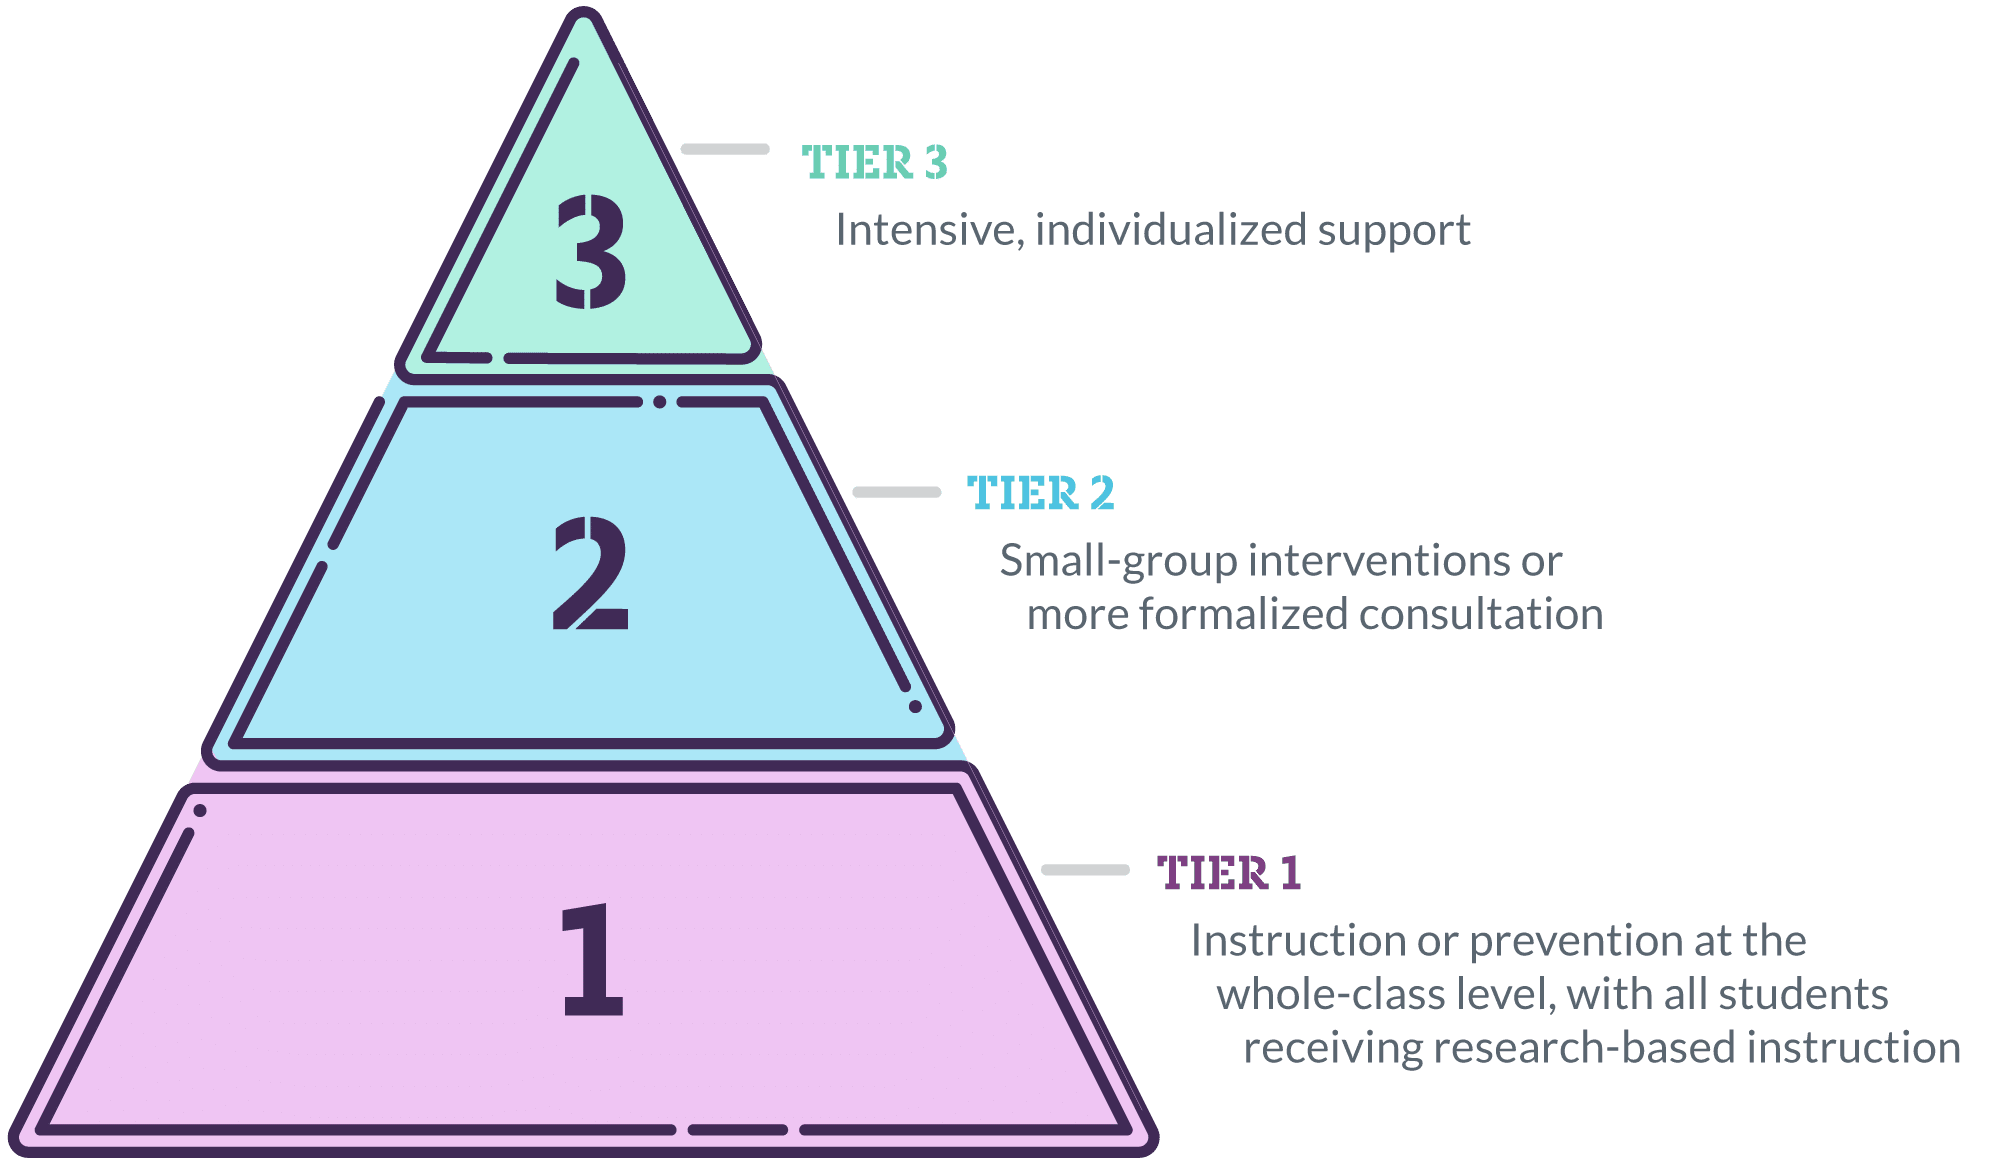 Three Tiers of Intervention Pyramid